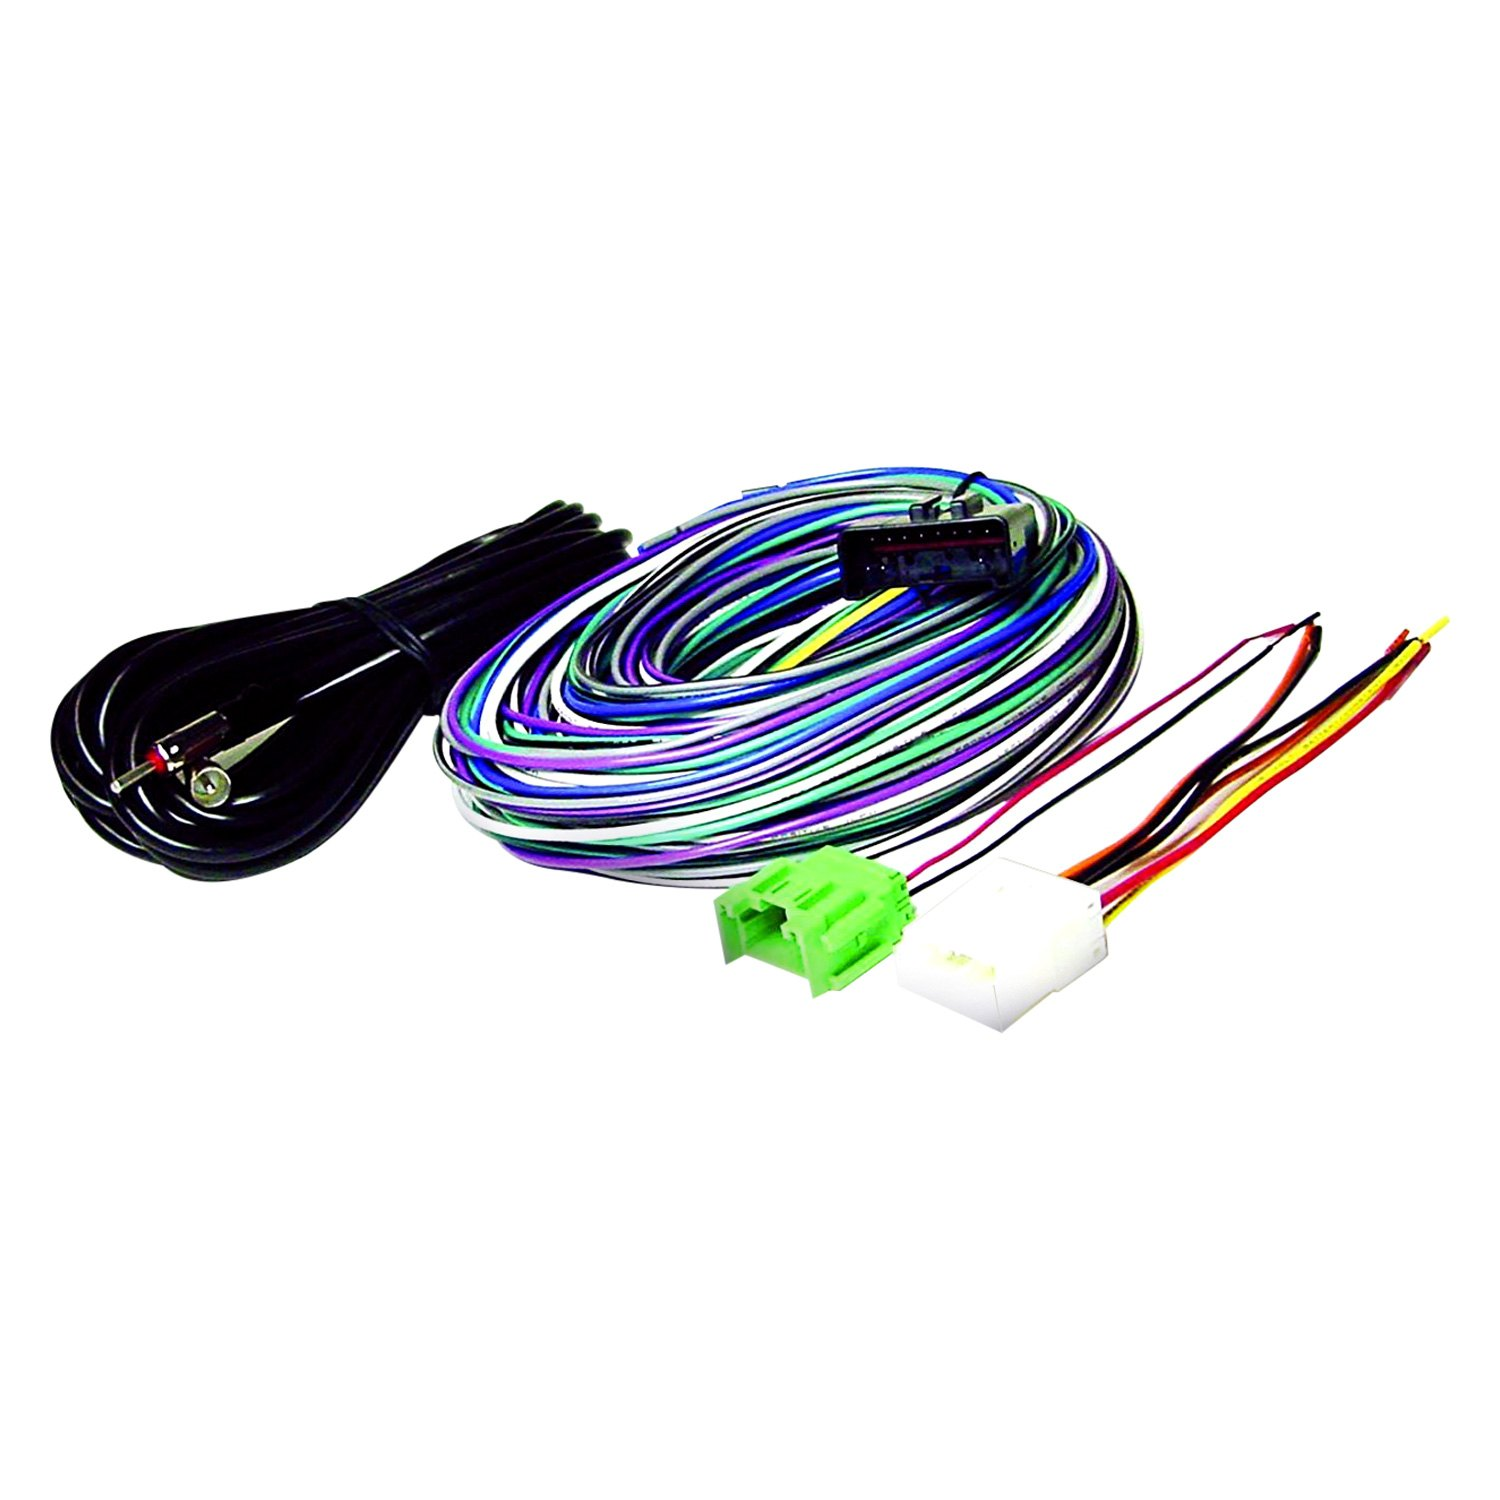 hight resolution of scosche radio wiring harness for aftermarket kit images gallery